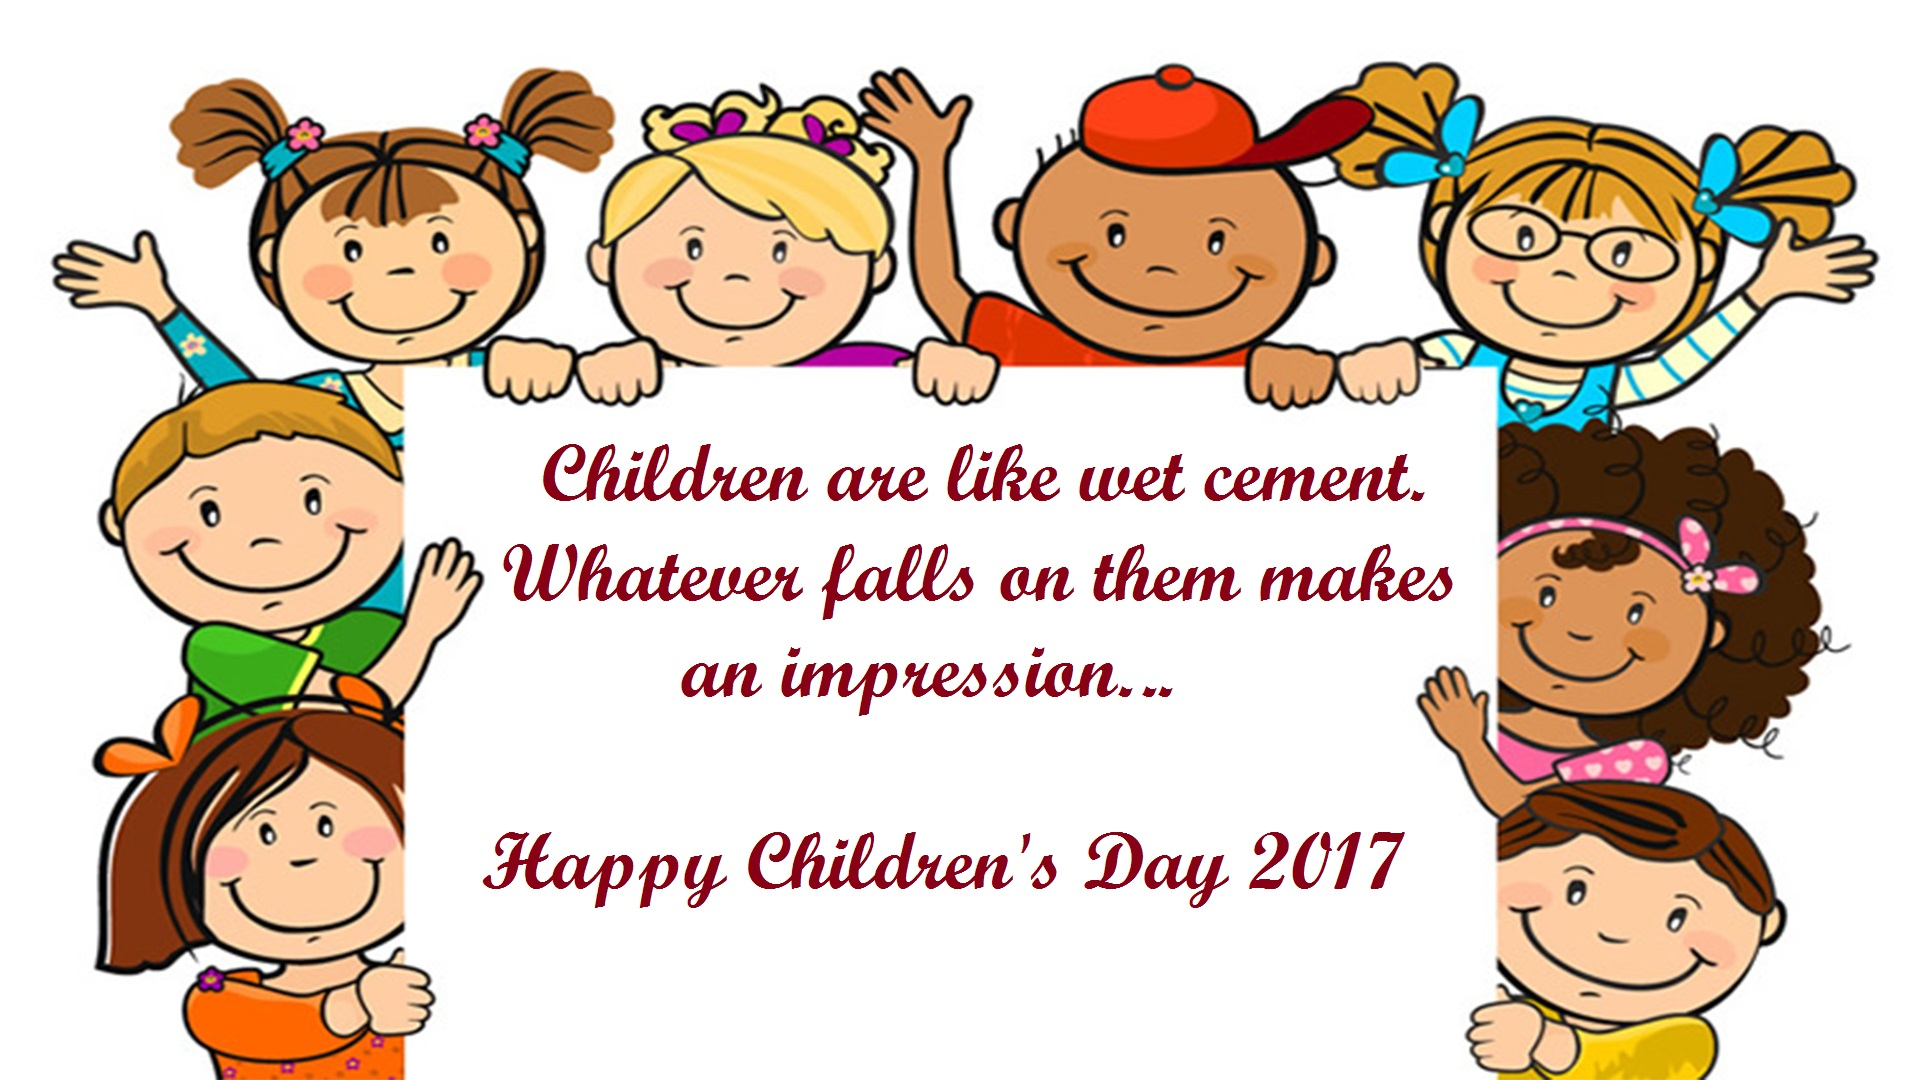 Happy Children's Day Quotes Images & Pictures 2017